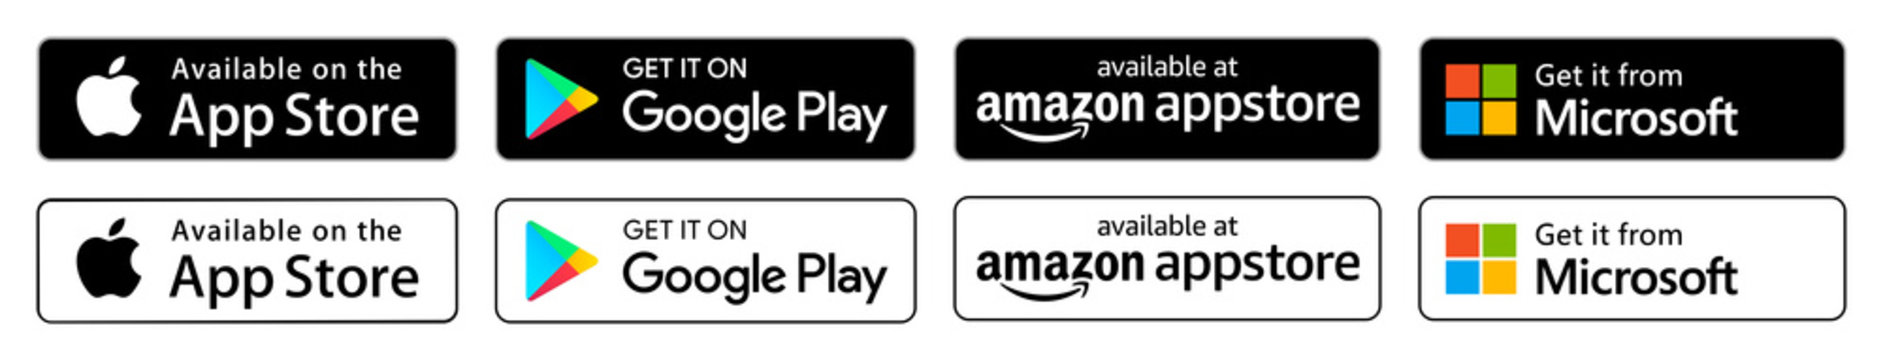 Apple App store, Google Play store, Microsoft store, amazon Store: download App buttons. Isolated black and white icons set on white background.